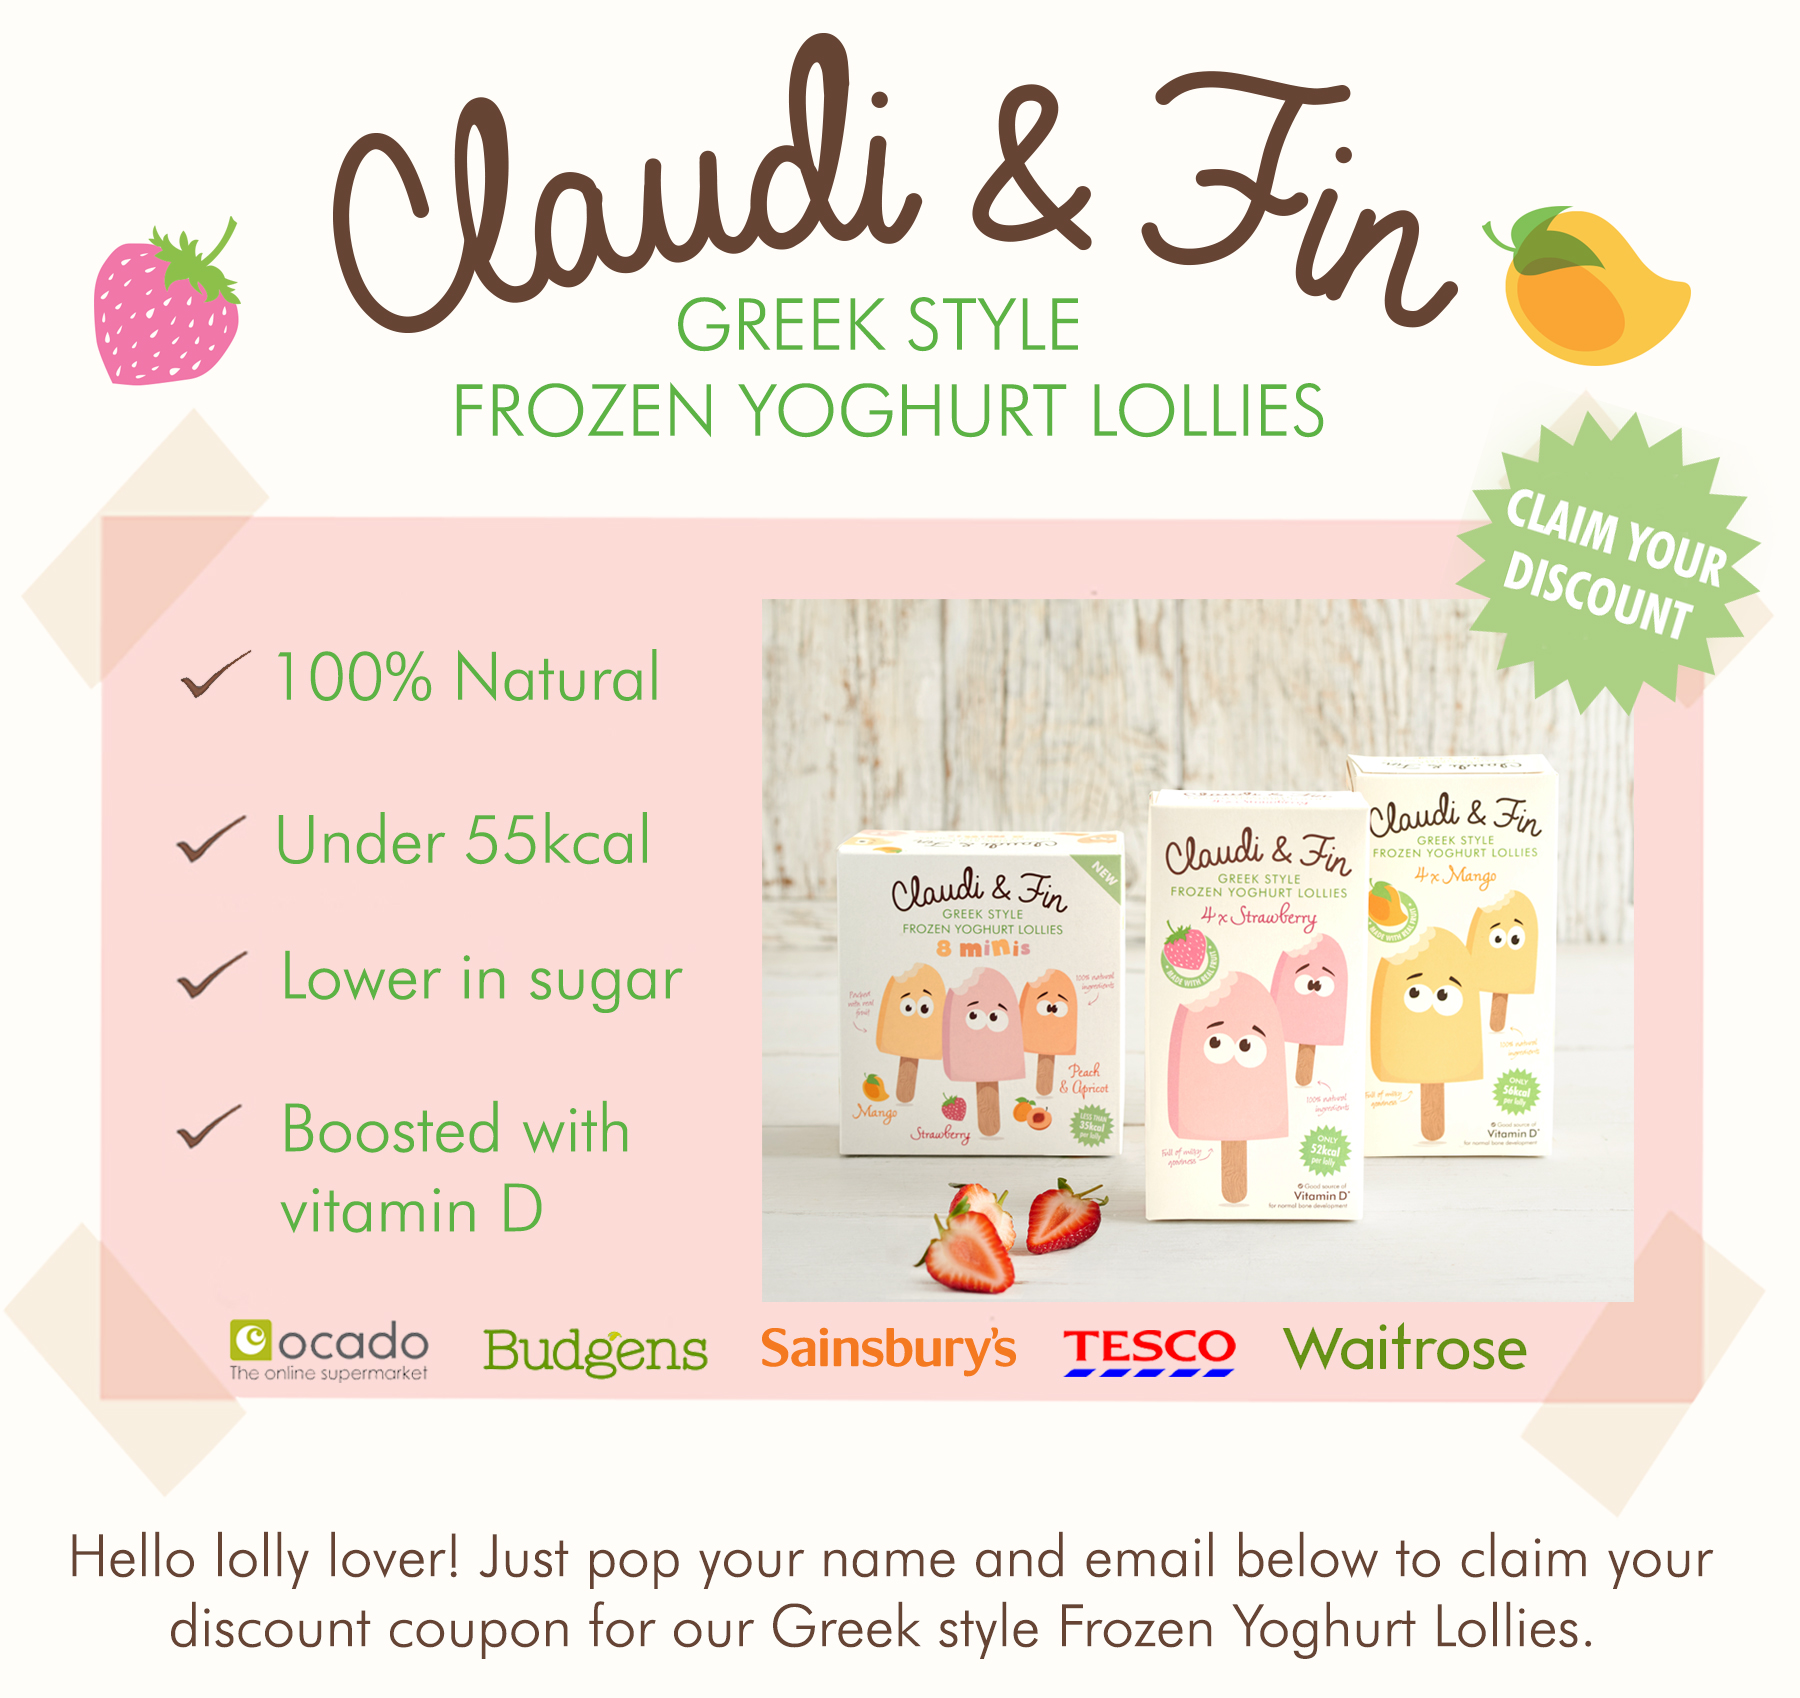 Coupon - Claudi & Fin Greek Style Yoghurt Lollies!